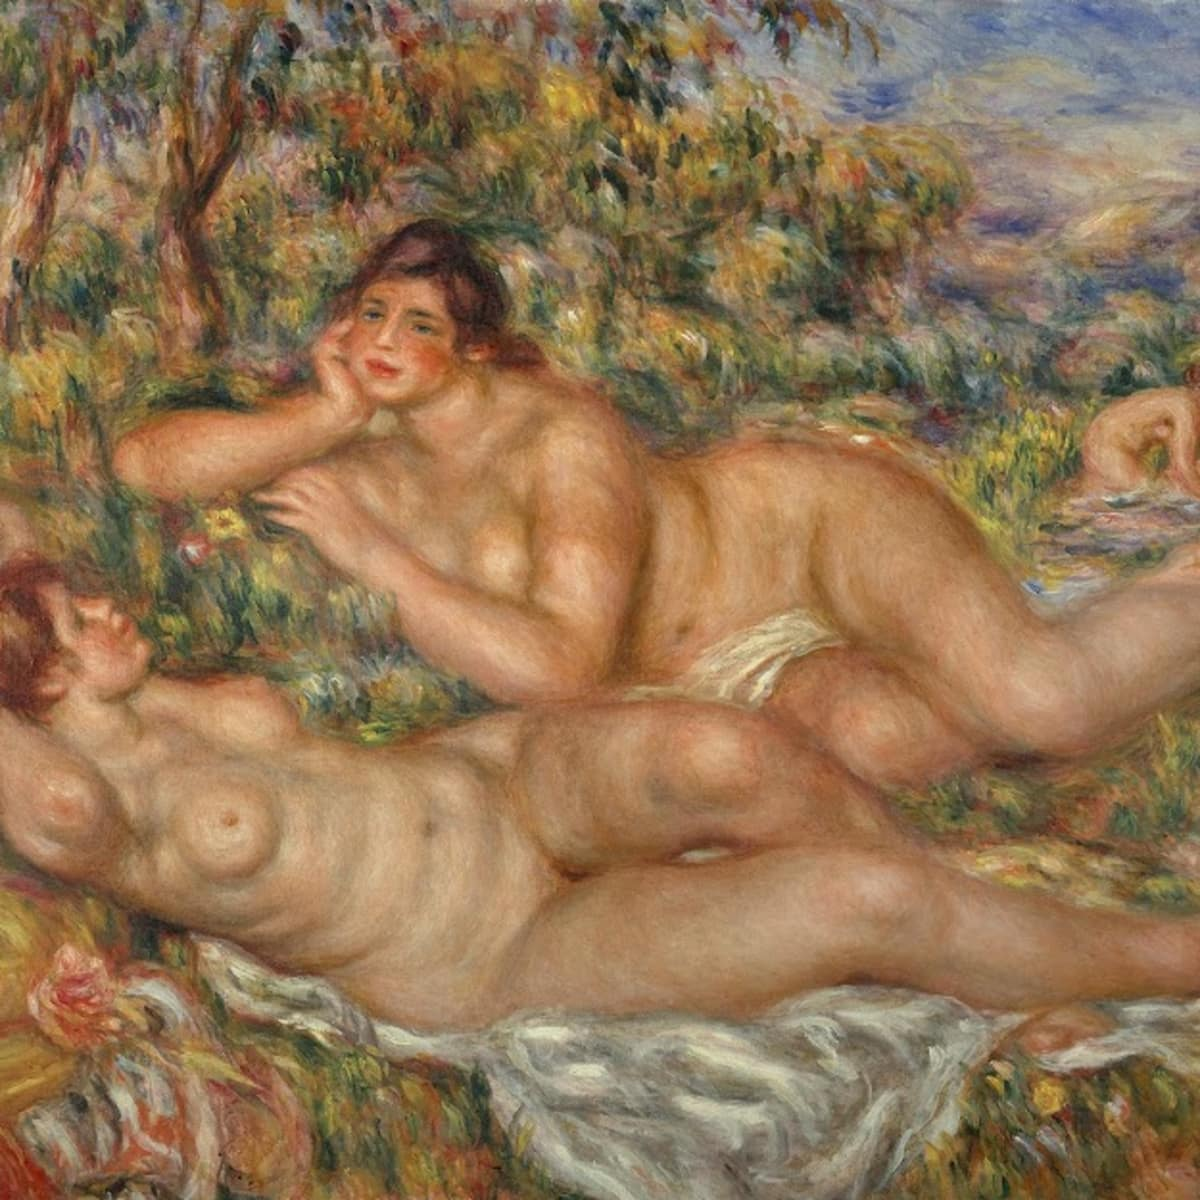 Pierre-Auguste Renoir, The Bathers, 1918-19, Oil on canvas